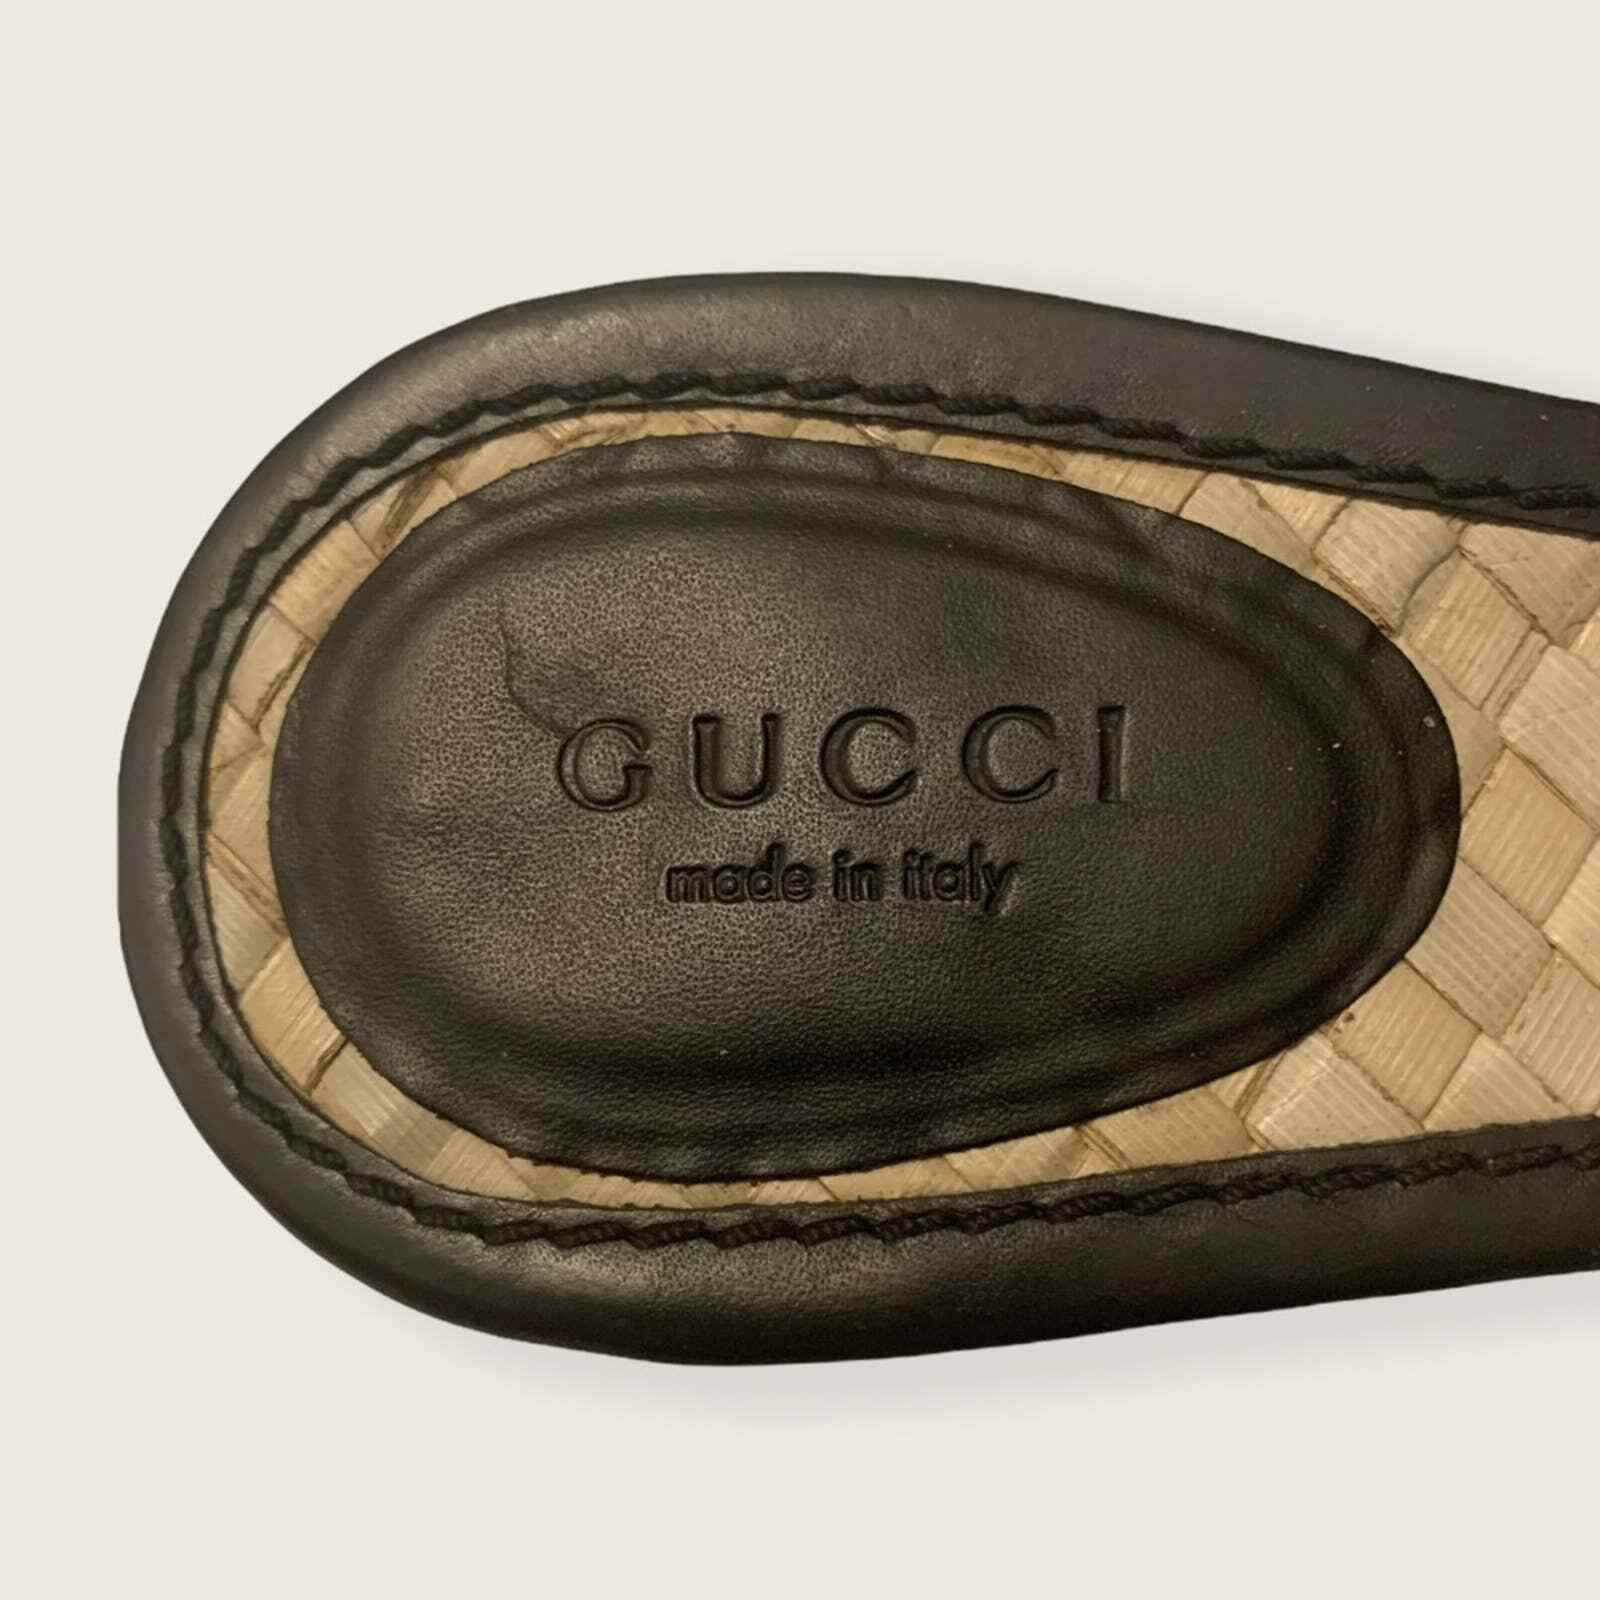 Vintage Gucci Strappy Sandals - image 7